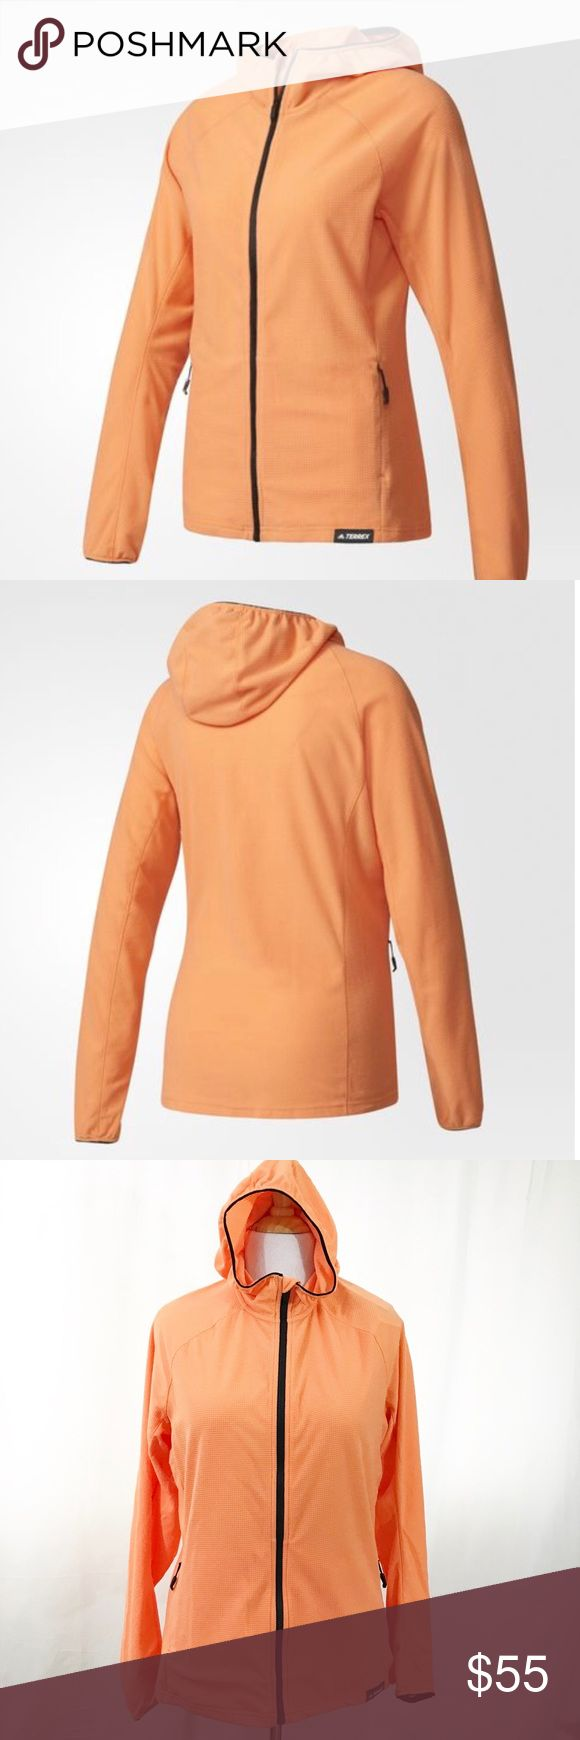 adidas Terrex Fleece Climalite with Hoodie. XL A cute orange fleece hoodie by Adidas. The Terrex.  Climalite  keeps your body dry by drawing sweat away from the skin. 37.5 technology uses millions of particles to capture and release moisture vapor – helping you zone in on a personal microclimate of ideal relative humidity and core body temperature. New with tag. Size XL. adidas Tops Sweatshirts & Hoodies